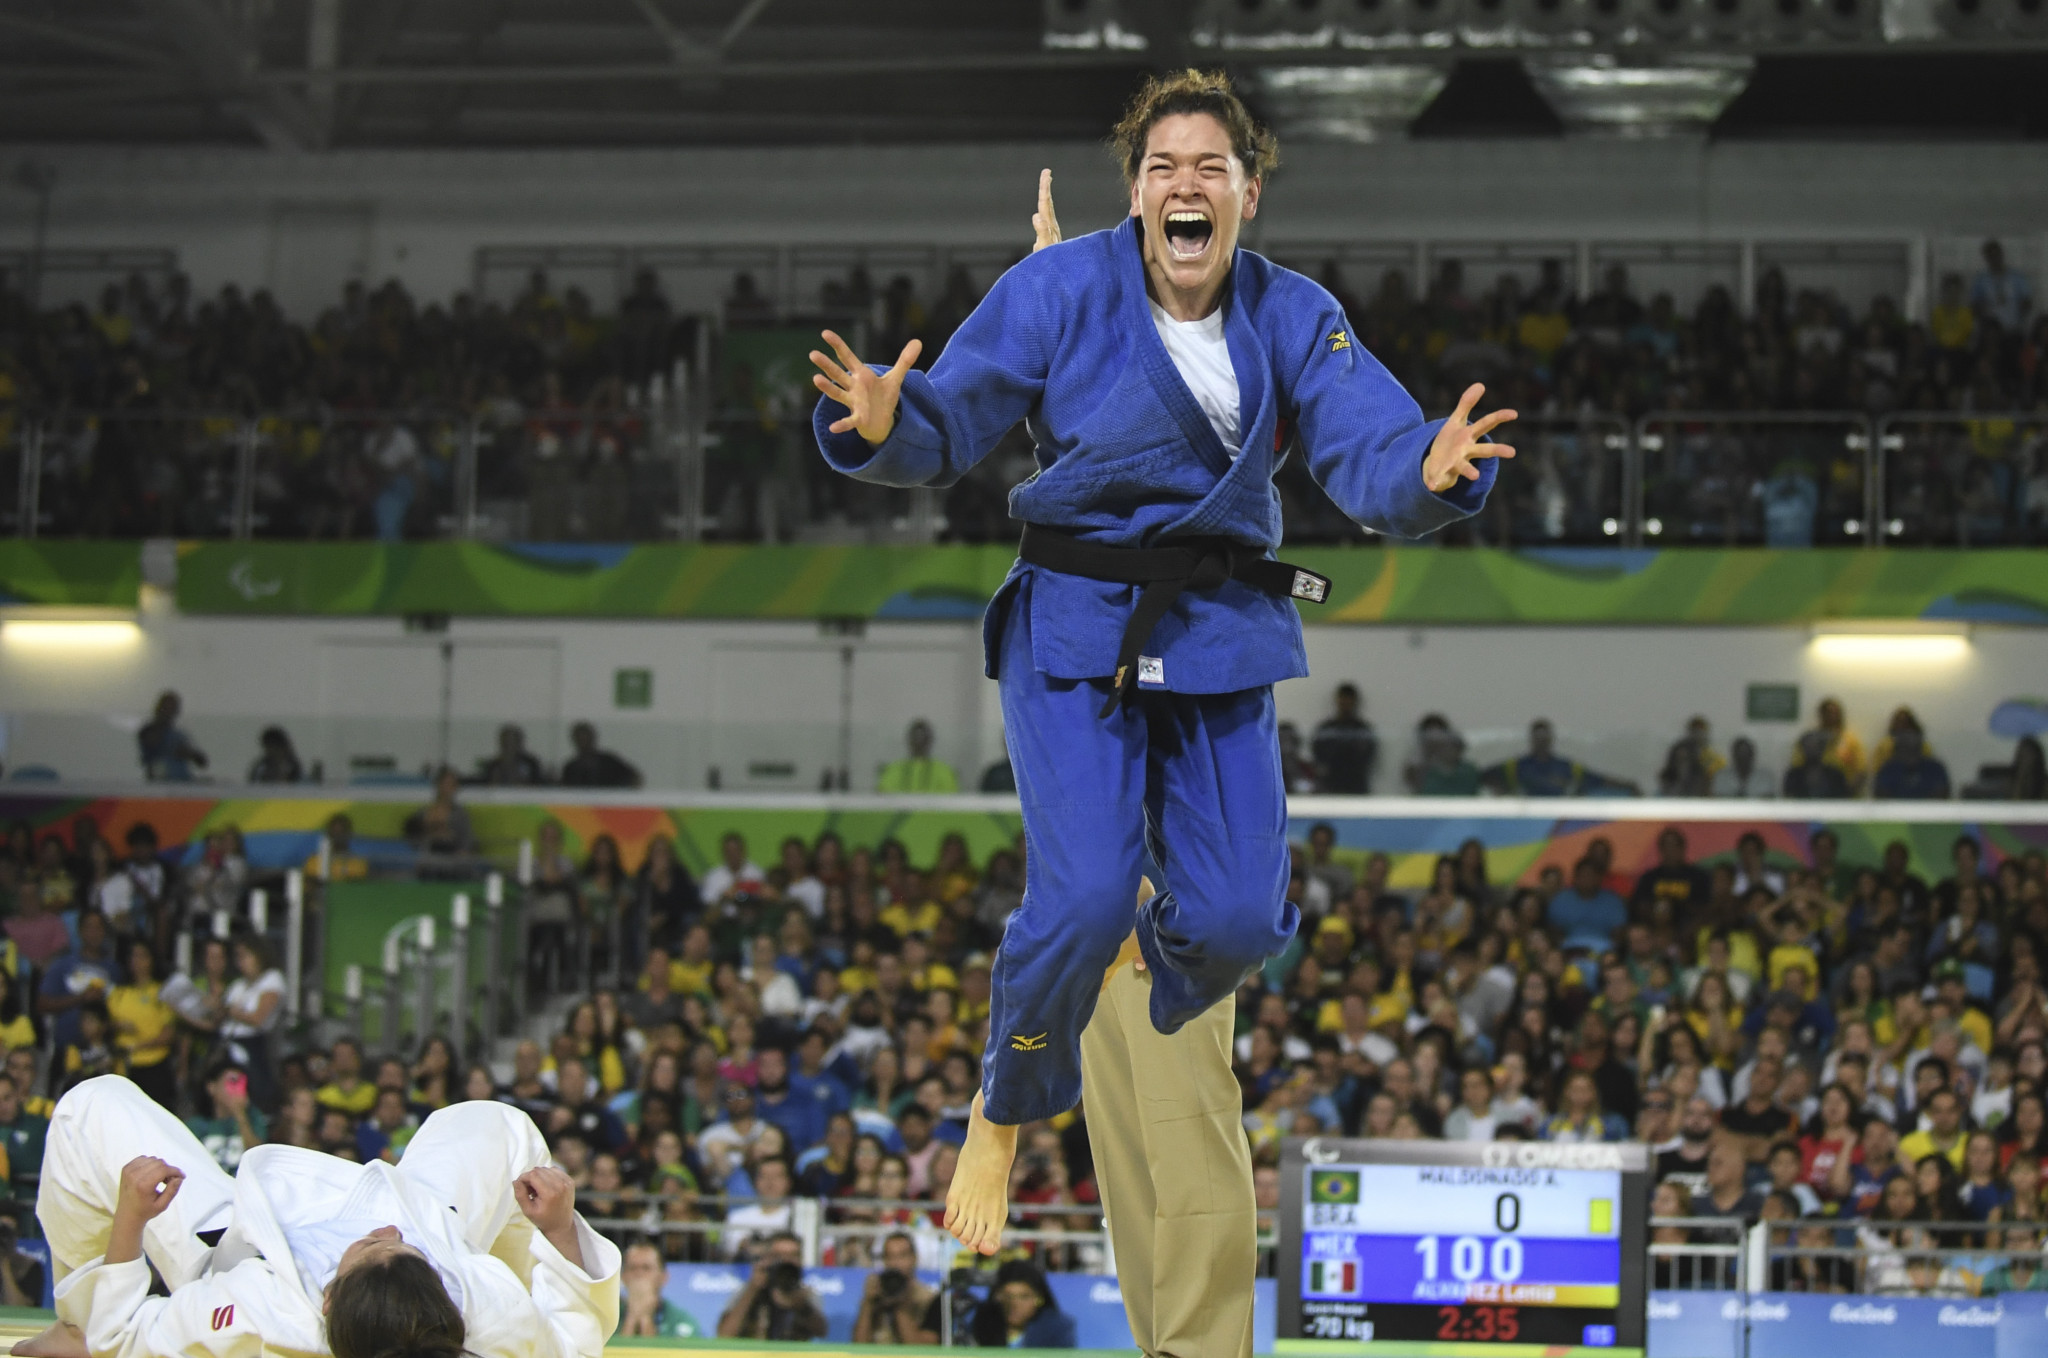 Lenia Ruvalcaba is expected to come up against her old rival Alana Maldonado who she defeated to win gold at Rio 2016 ©Getty Images